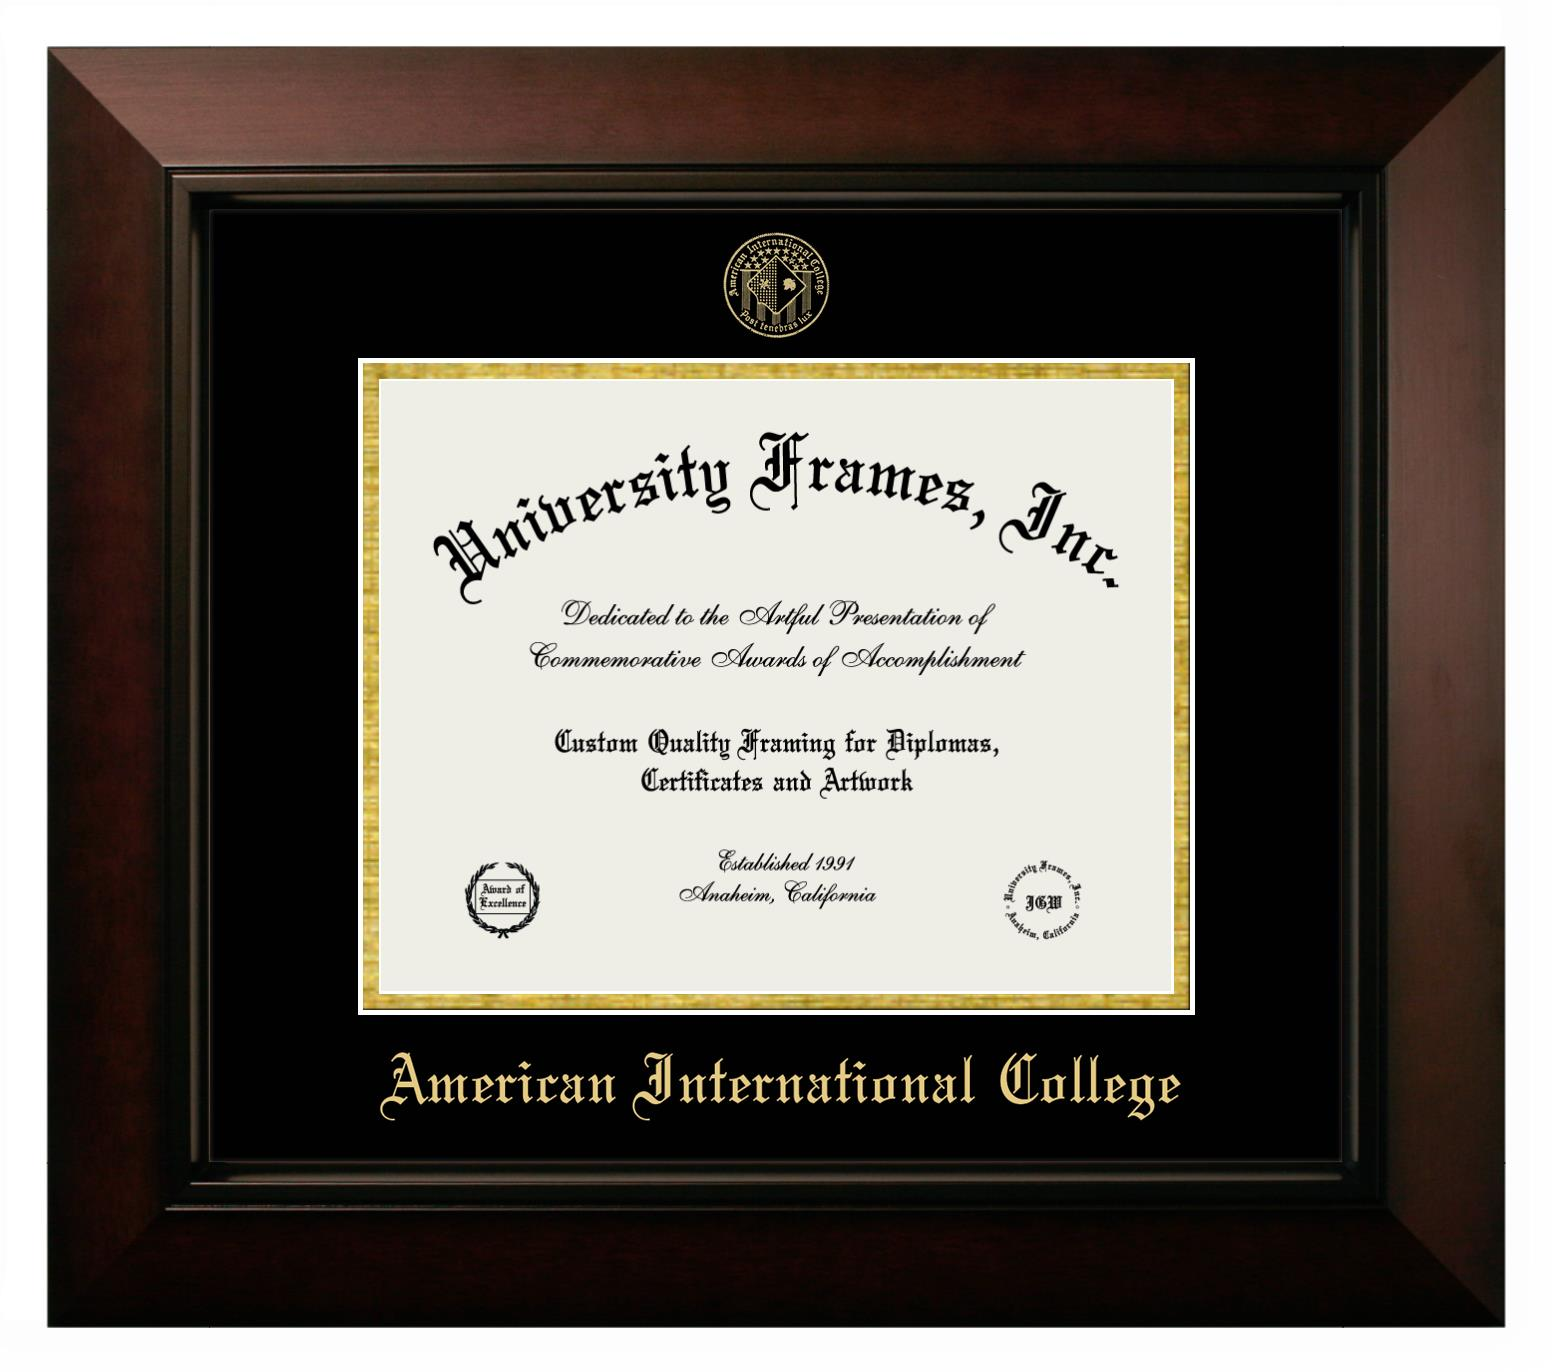 American International College Diploma Frame In Executive With Gold Fillet With Black Suede Mat